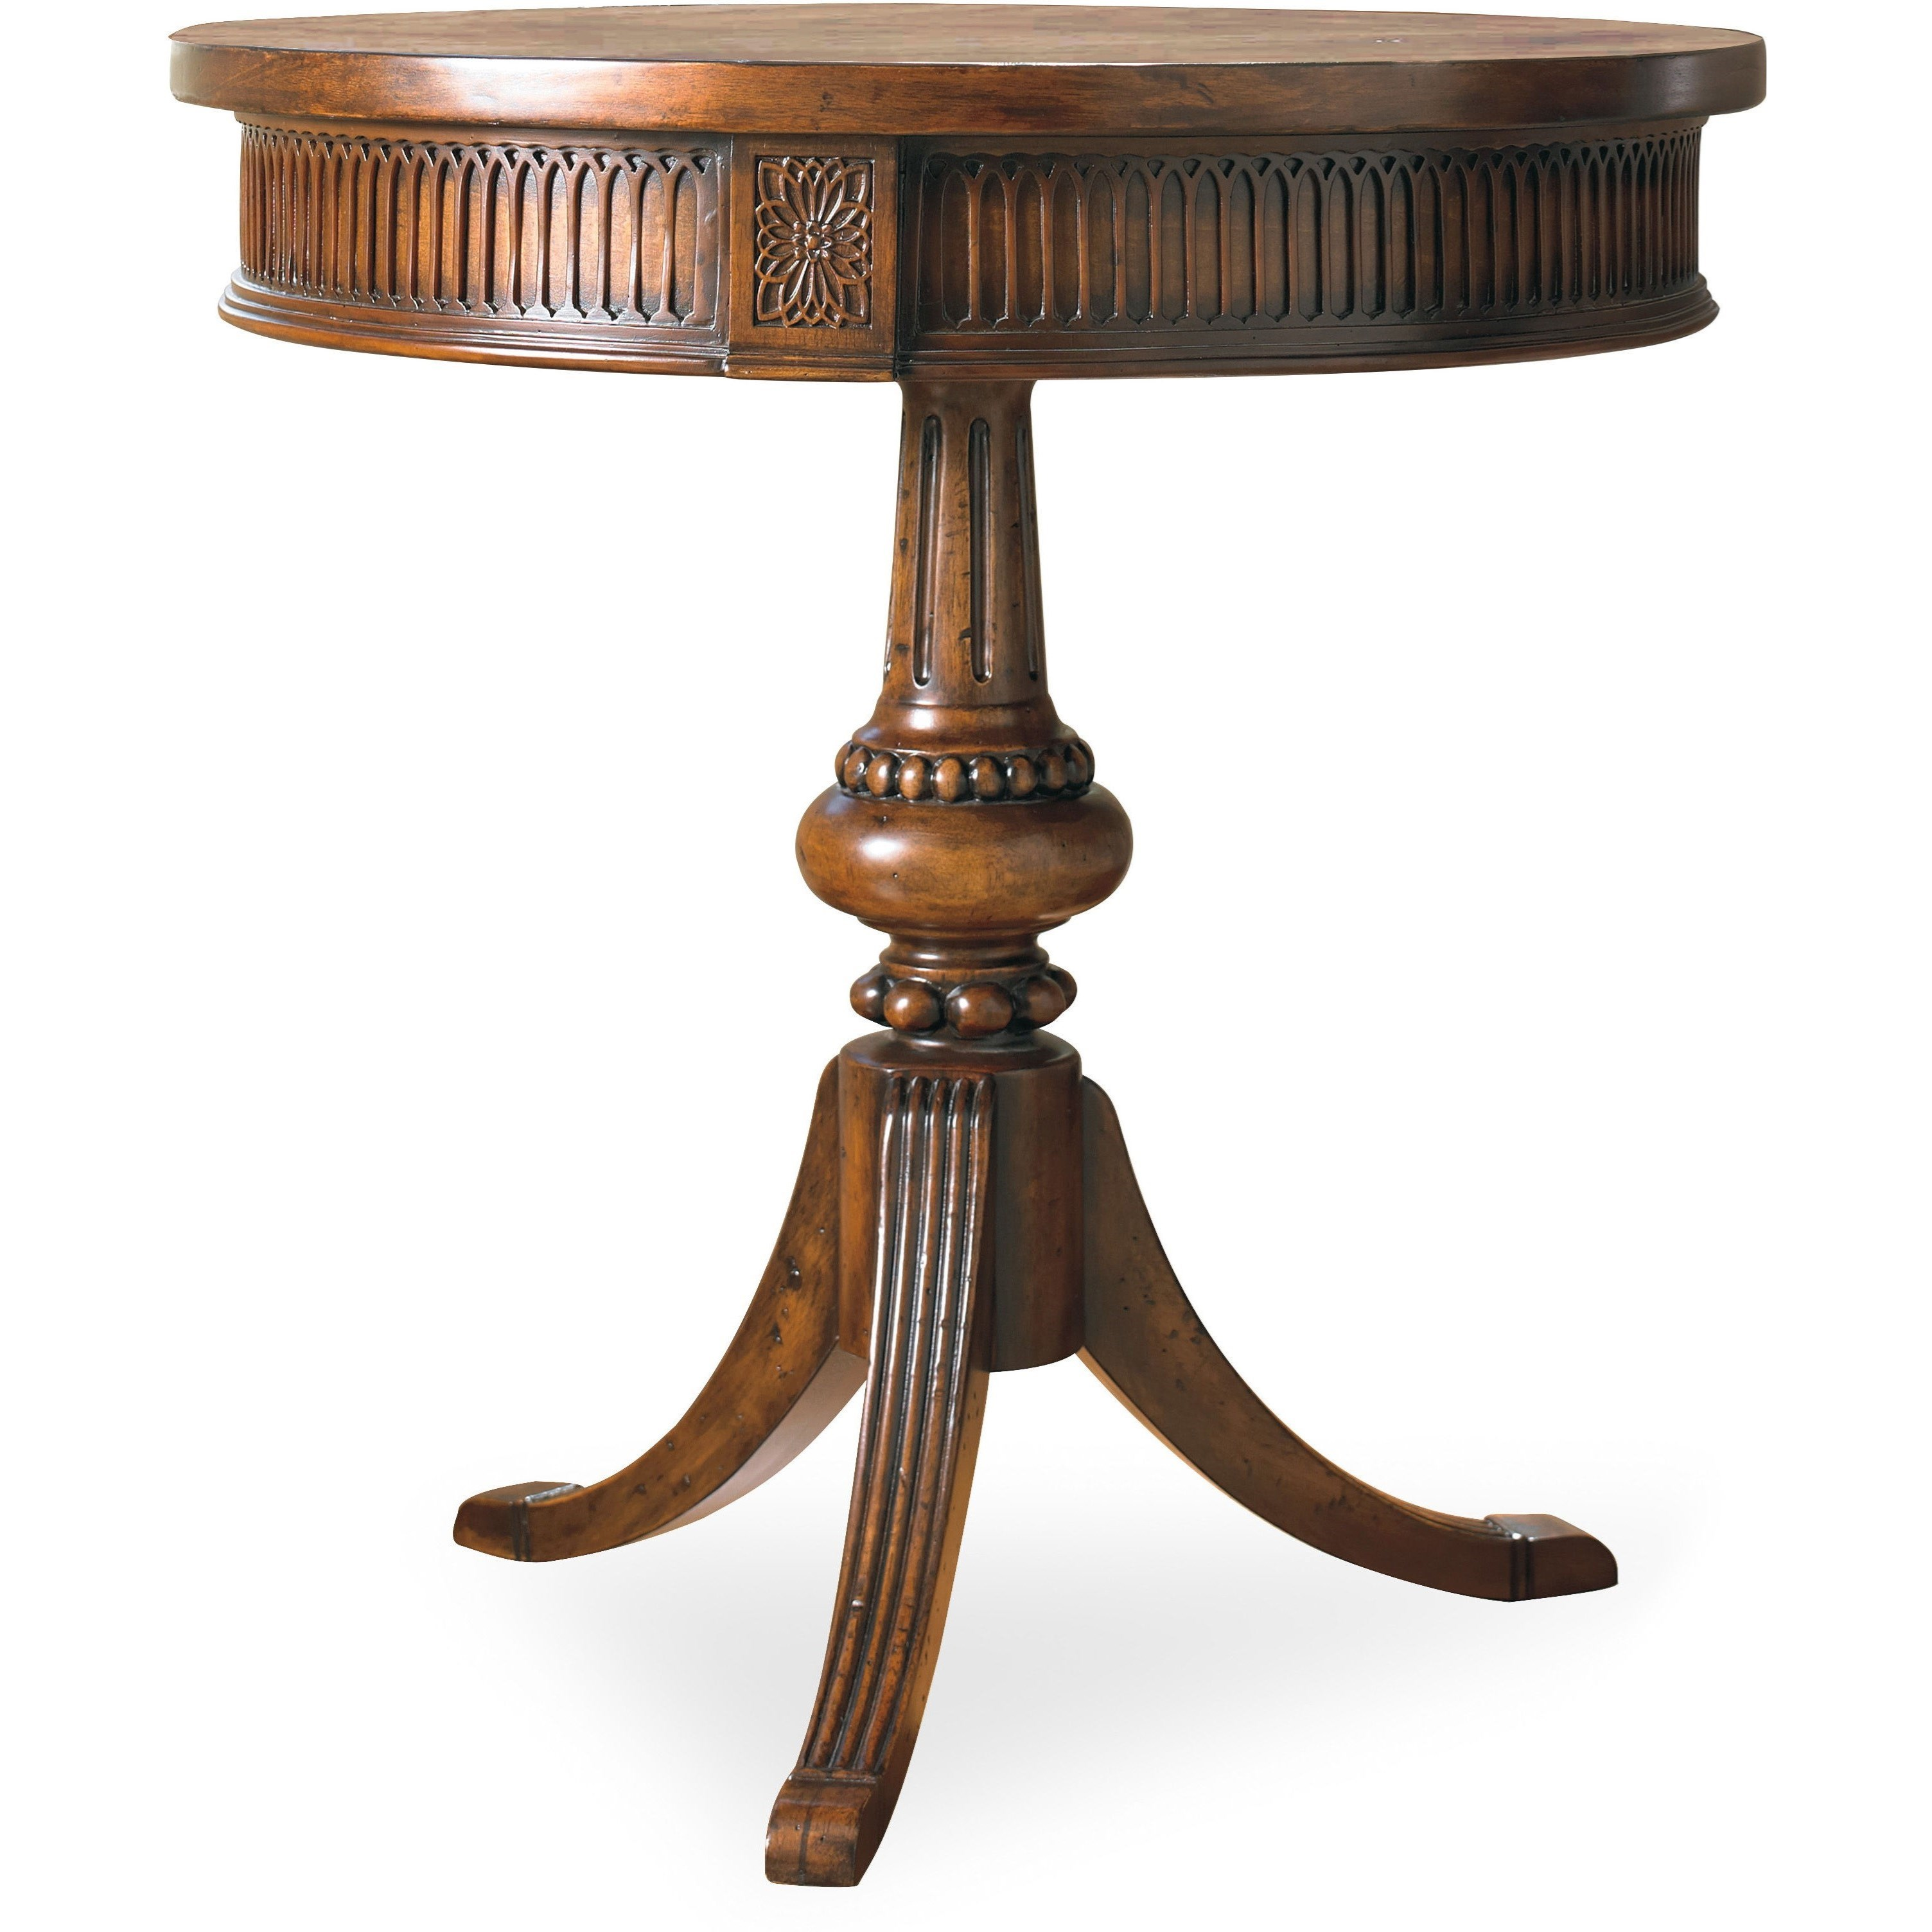 Living Room Accents Round Pedestal Accent Table by Hooker Furniture at Baer's Furniture